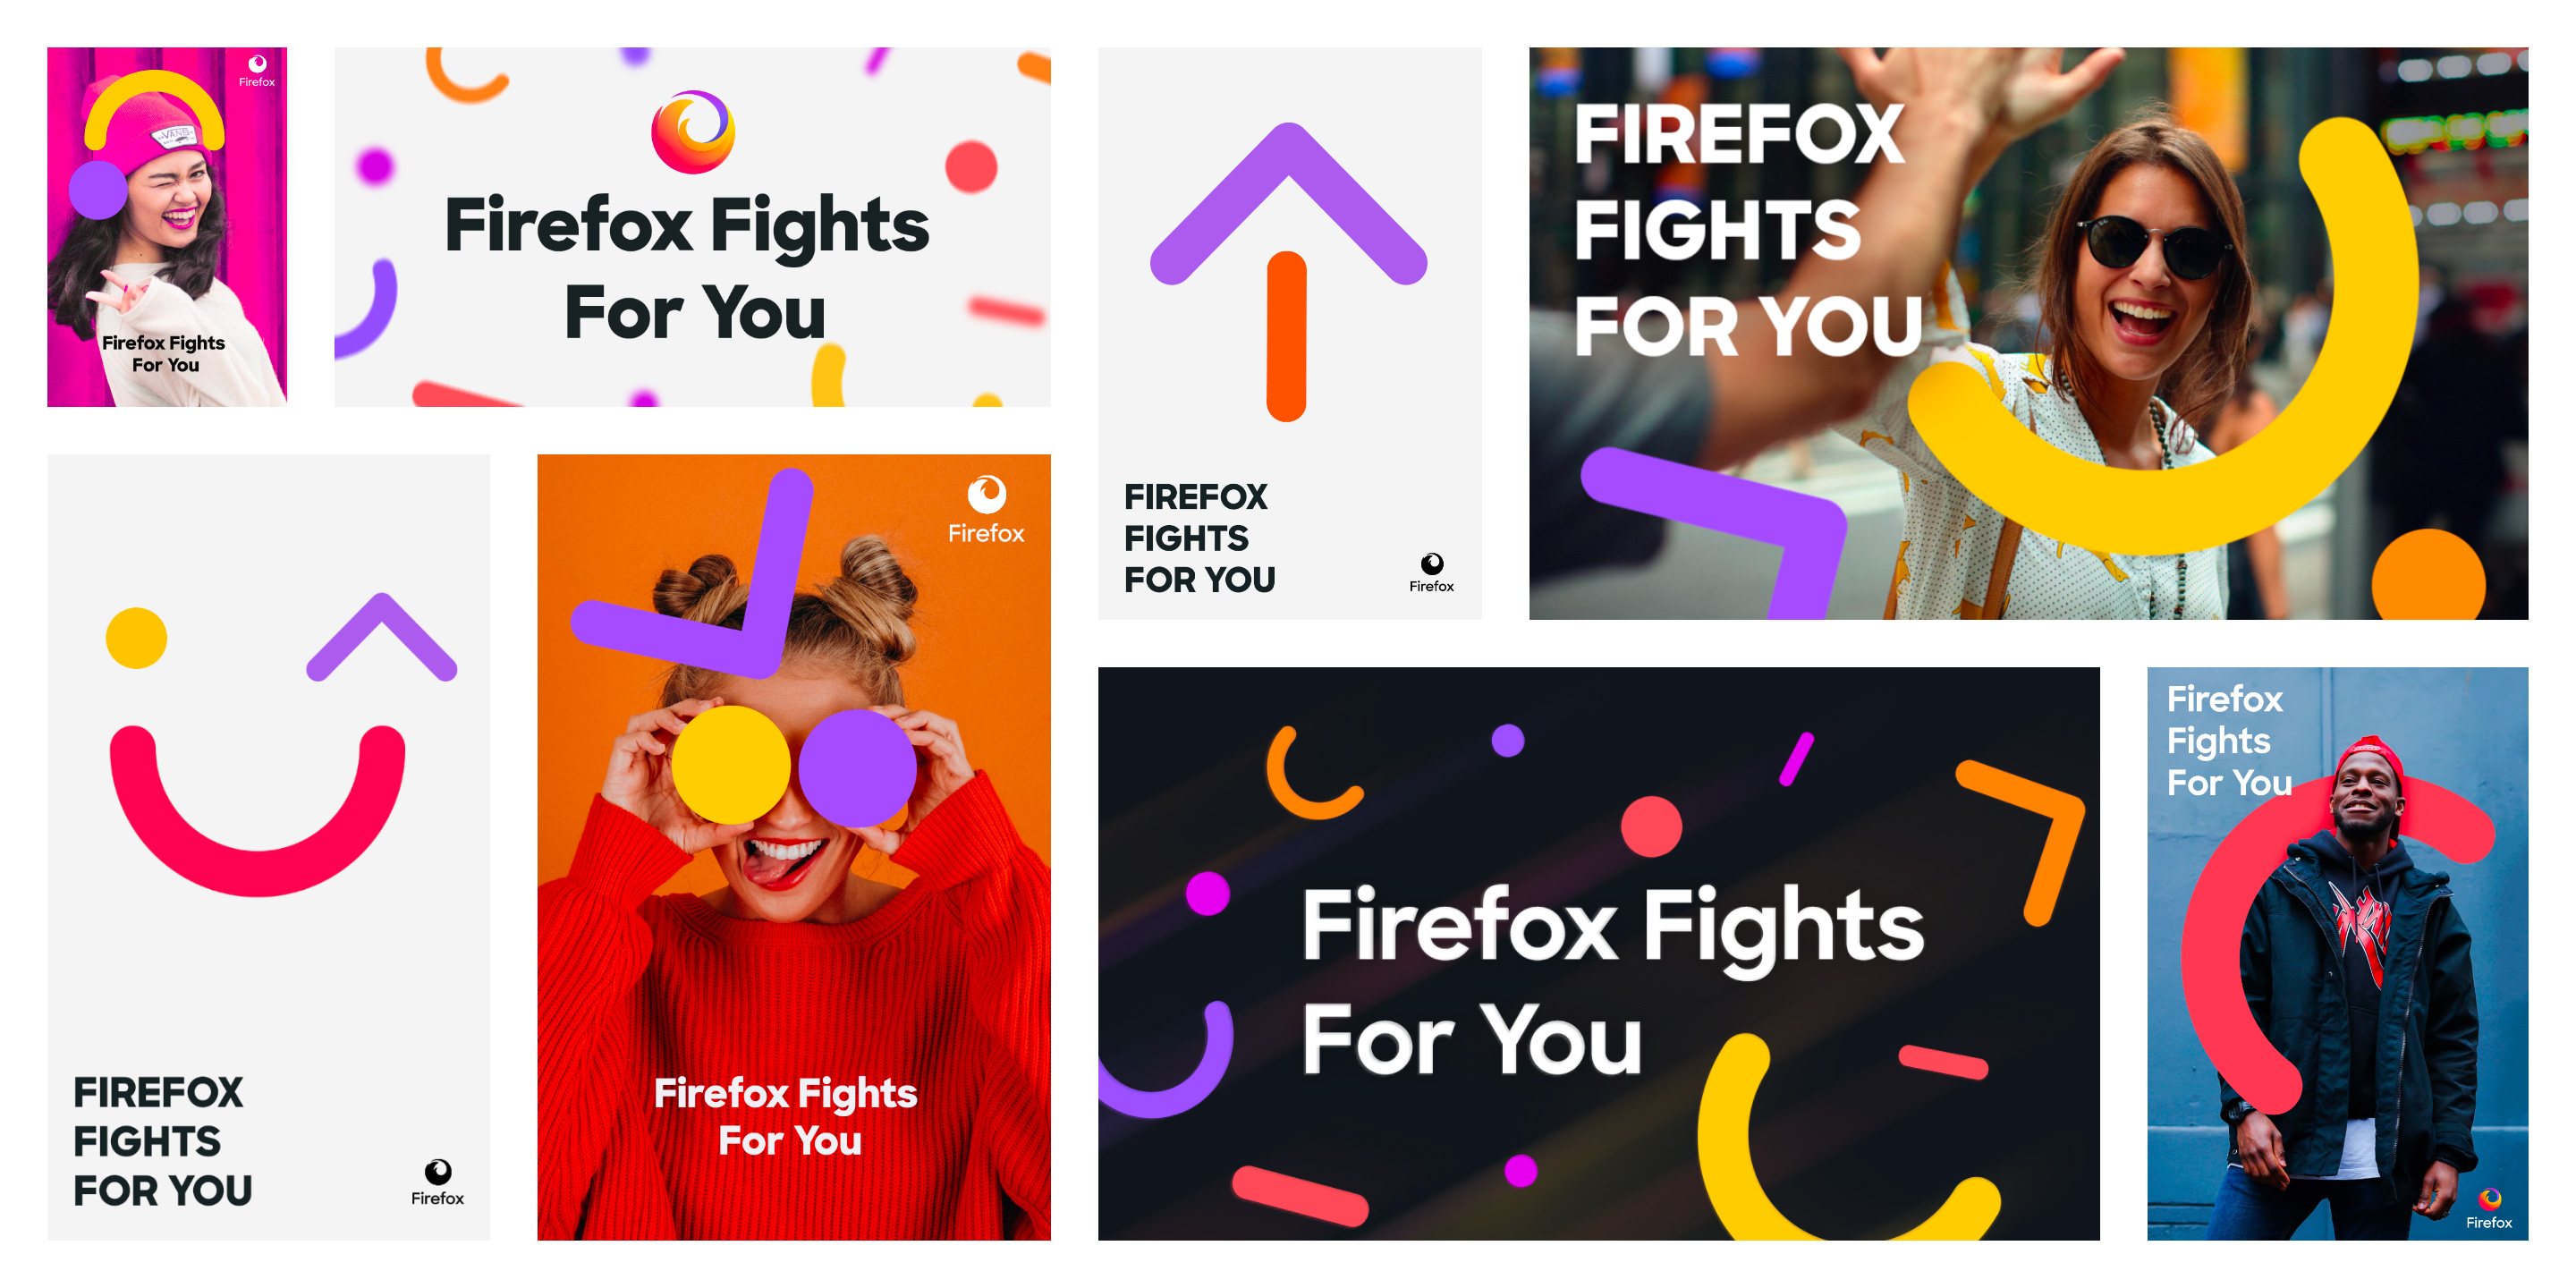 Firefox marketing campaign